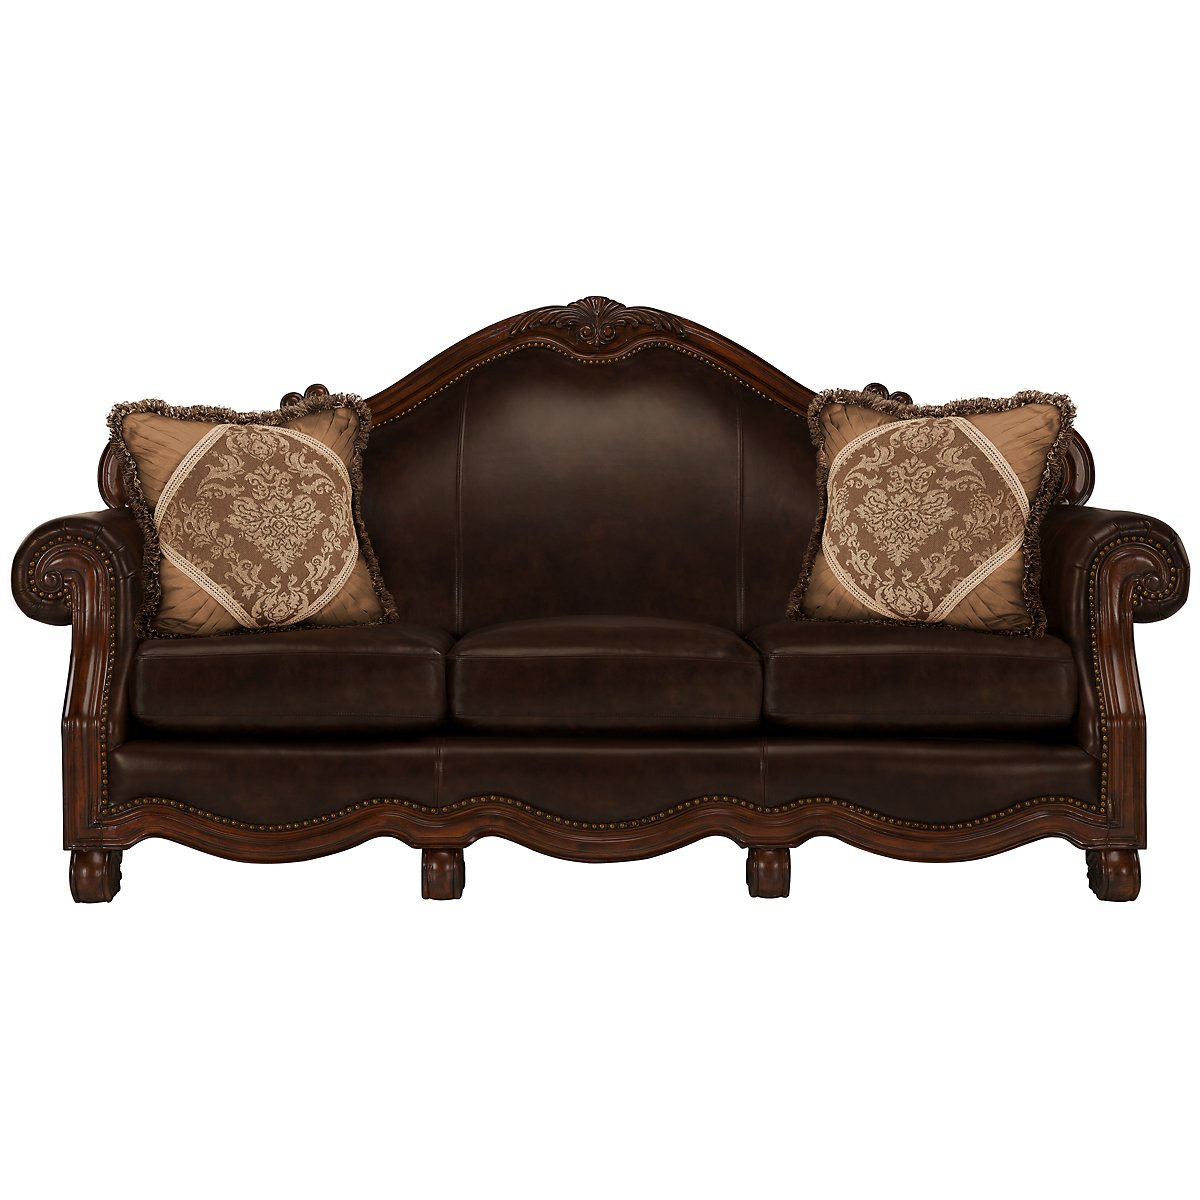 city furniture regal dark tone leather sofa. Black Bedroom Furniture Sets. Home Design Ideas